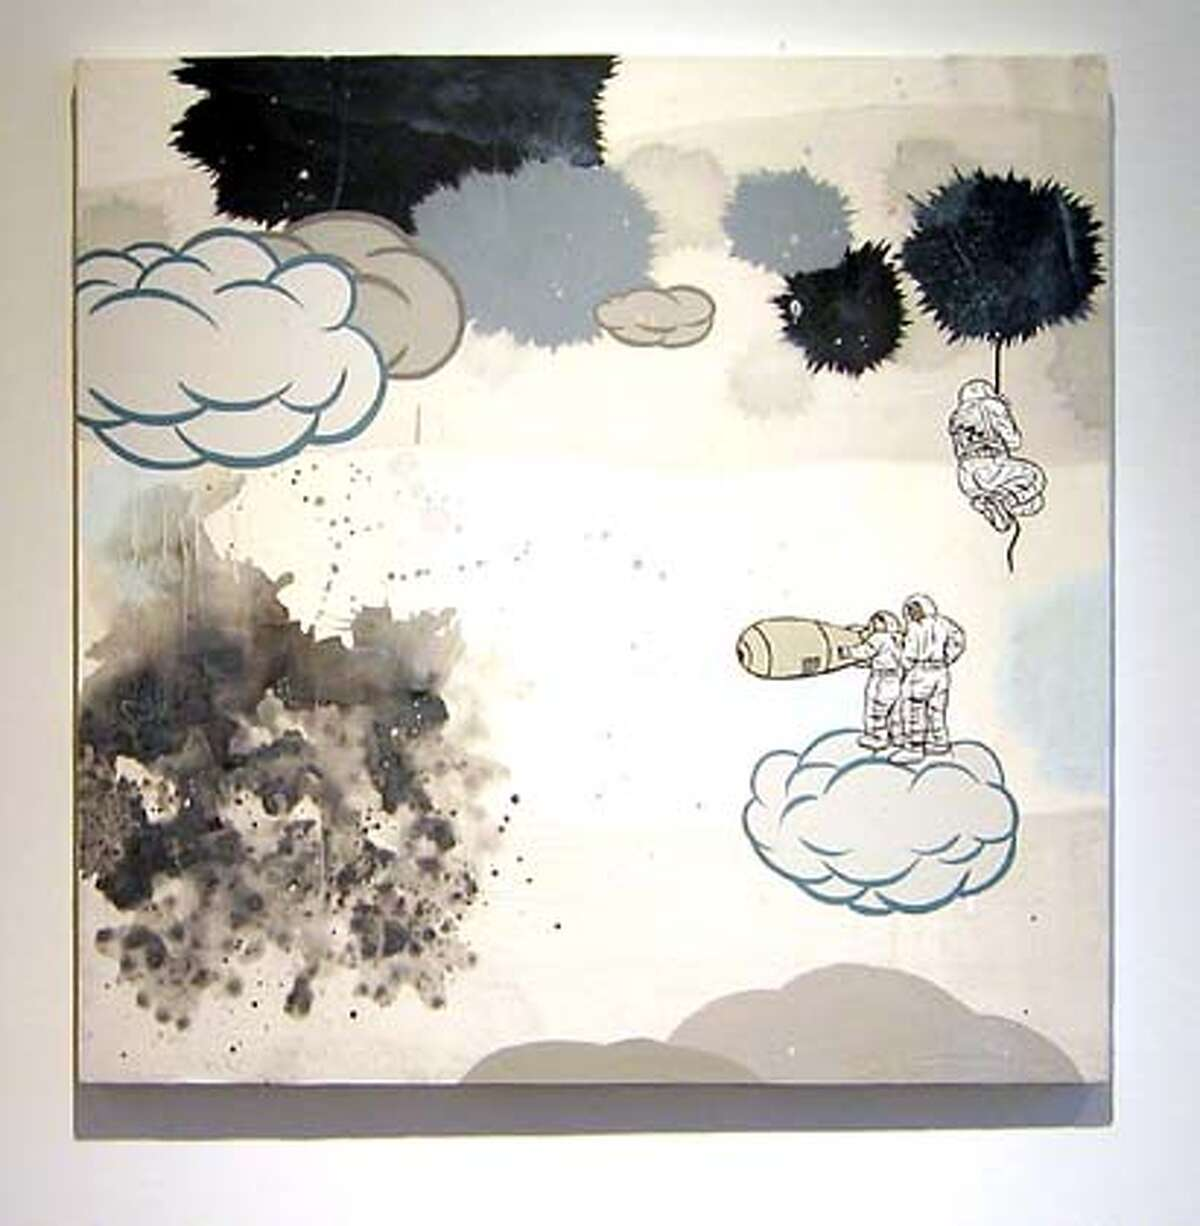 TRIBULATION NO. 22 by david Huffman, 2004 acrylic on canvas 36 x 36 inches